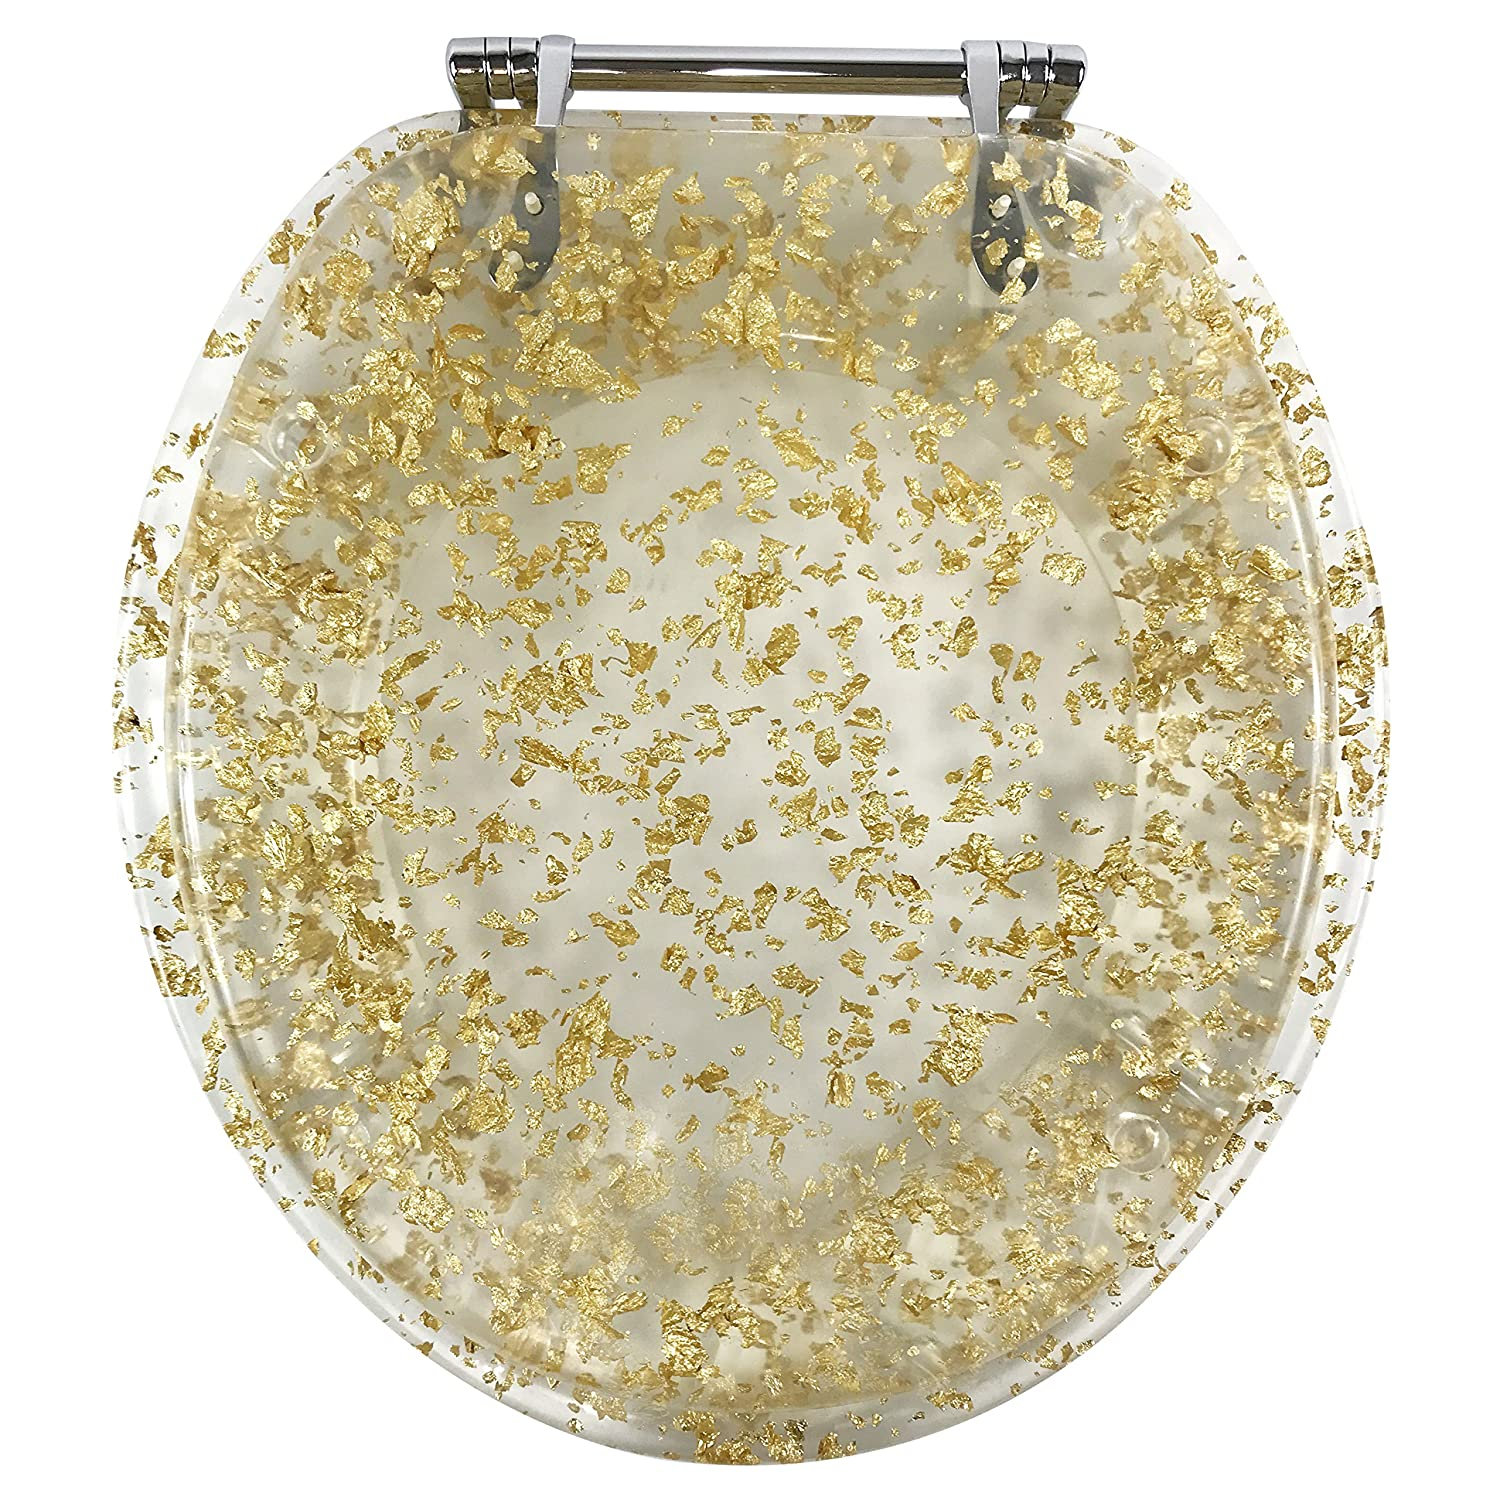 Remarkable Ginsey Standard Resin Toilet Seat With Chrome Hinges Gold Foil Caraccident5 Cool Chair Designs And Ideas Caraccident5Info